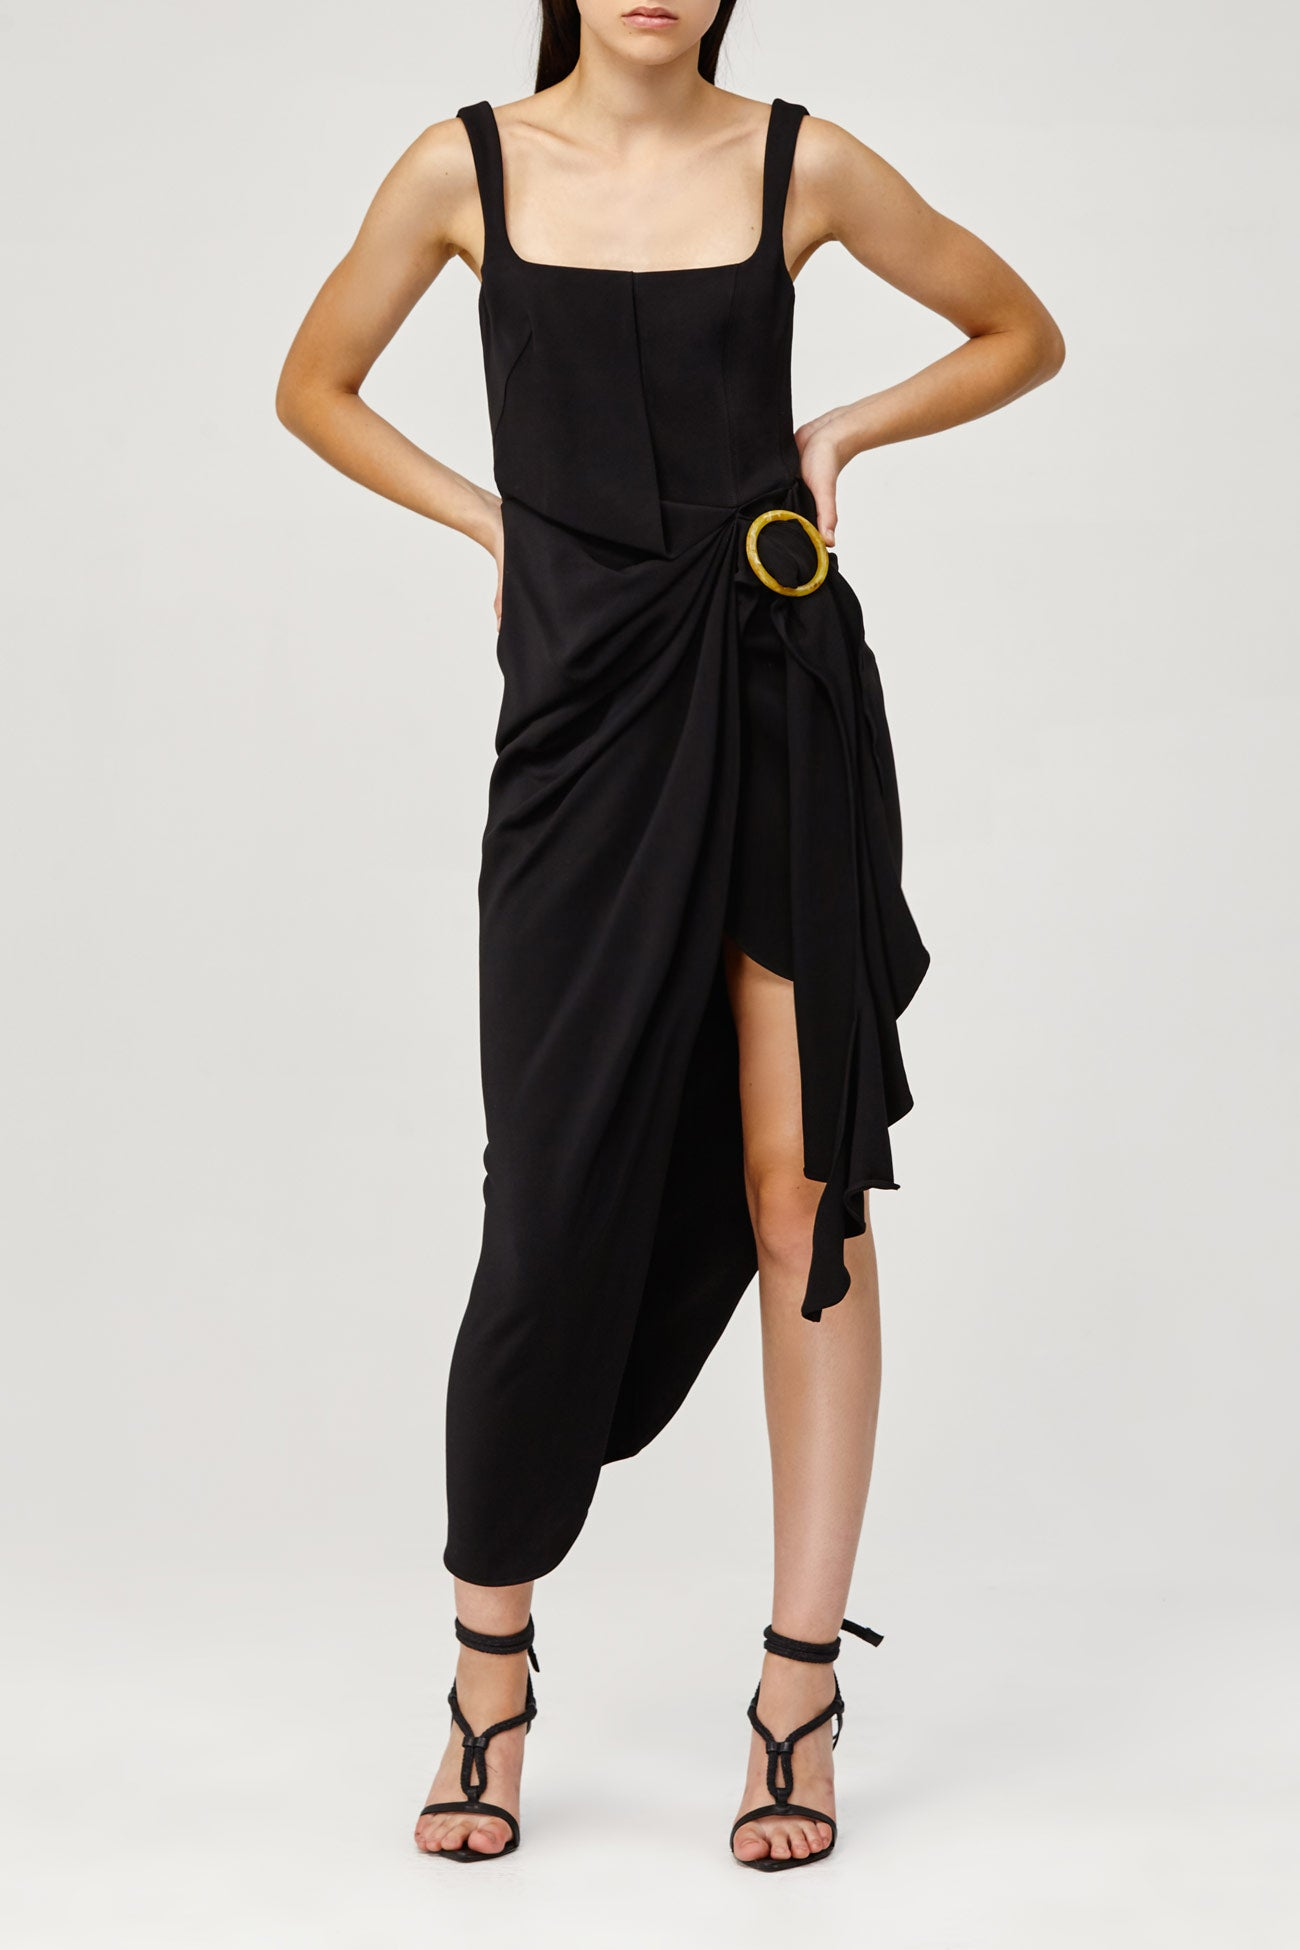 Acler Ladies Black Maine Dress with Fitted Bodice and Wrap Around, Asymmetric Skirt